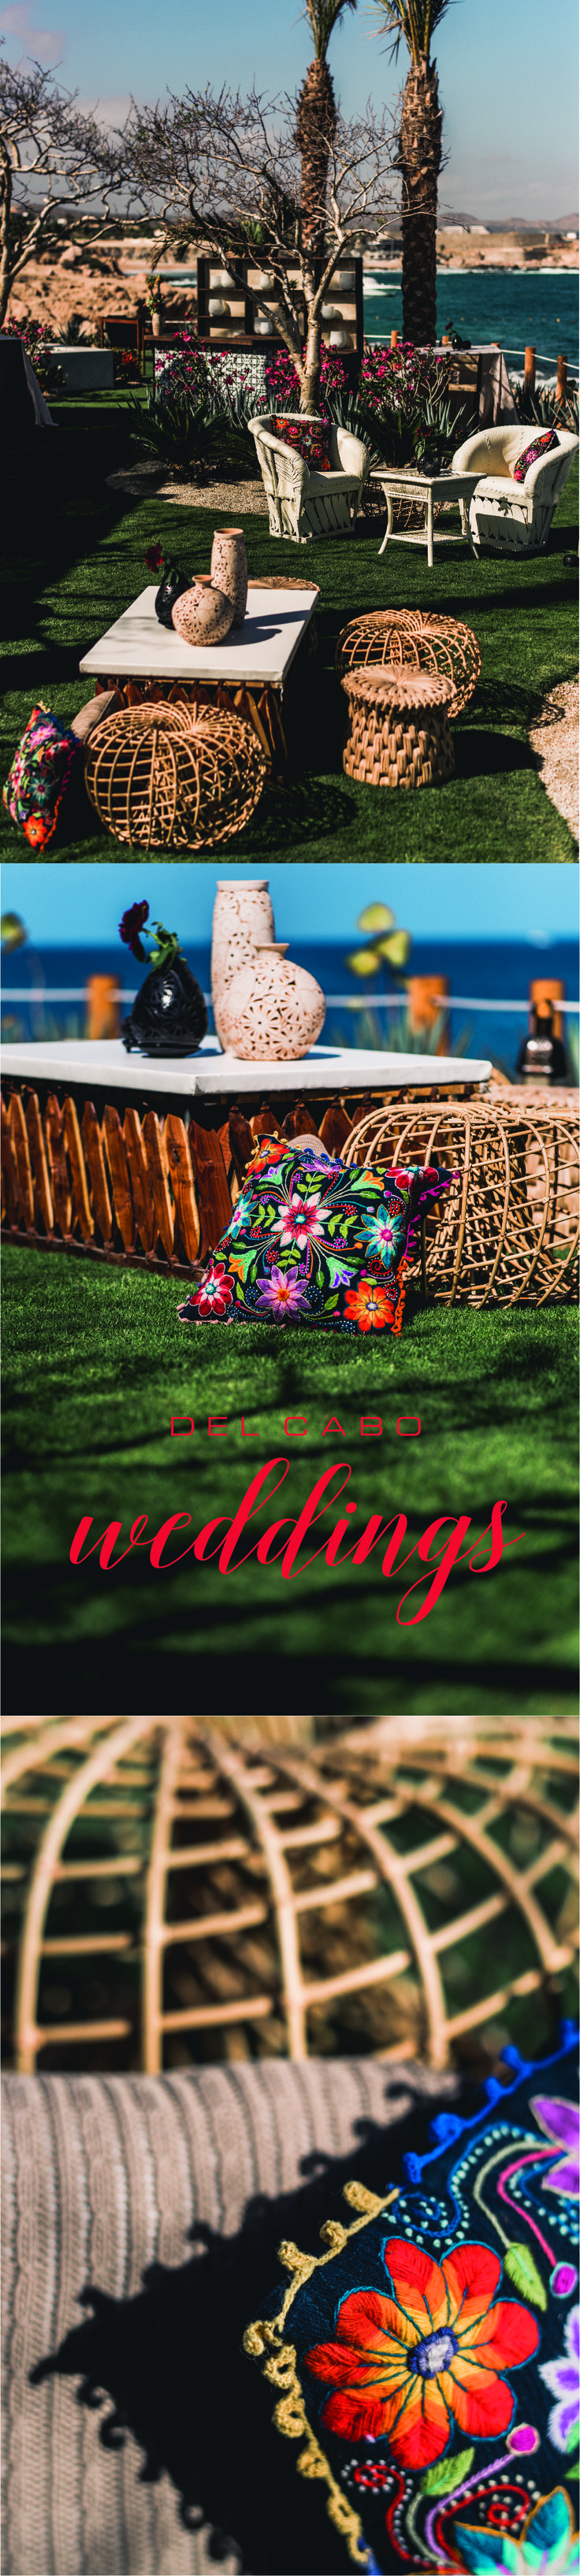 Get inspired by colors! This rustic Mexican wedding theme is perfect for the traditional bride. Combine culture and love in a beautiful setting!  Visit our website by clicking on the image!